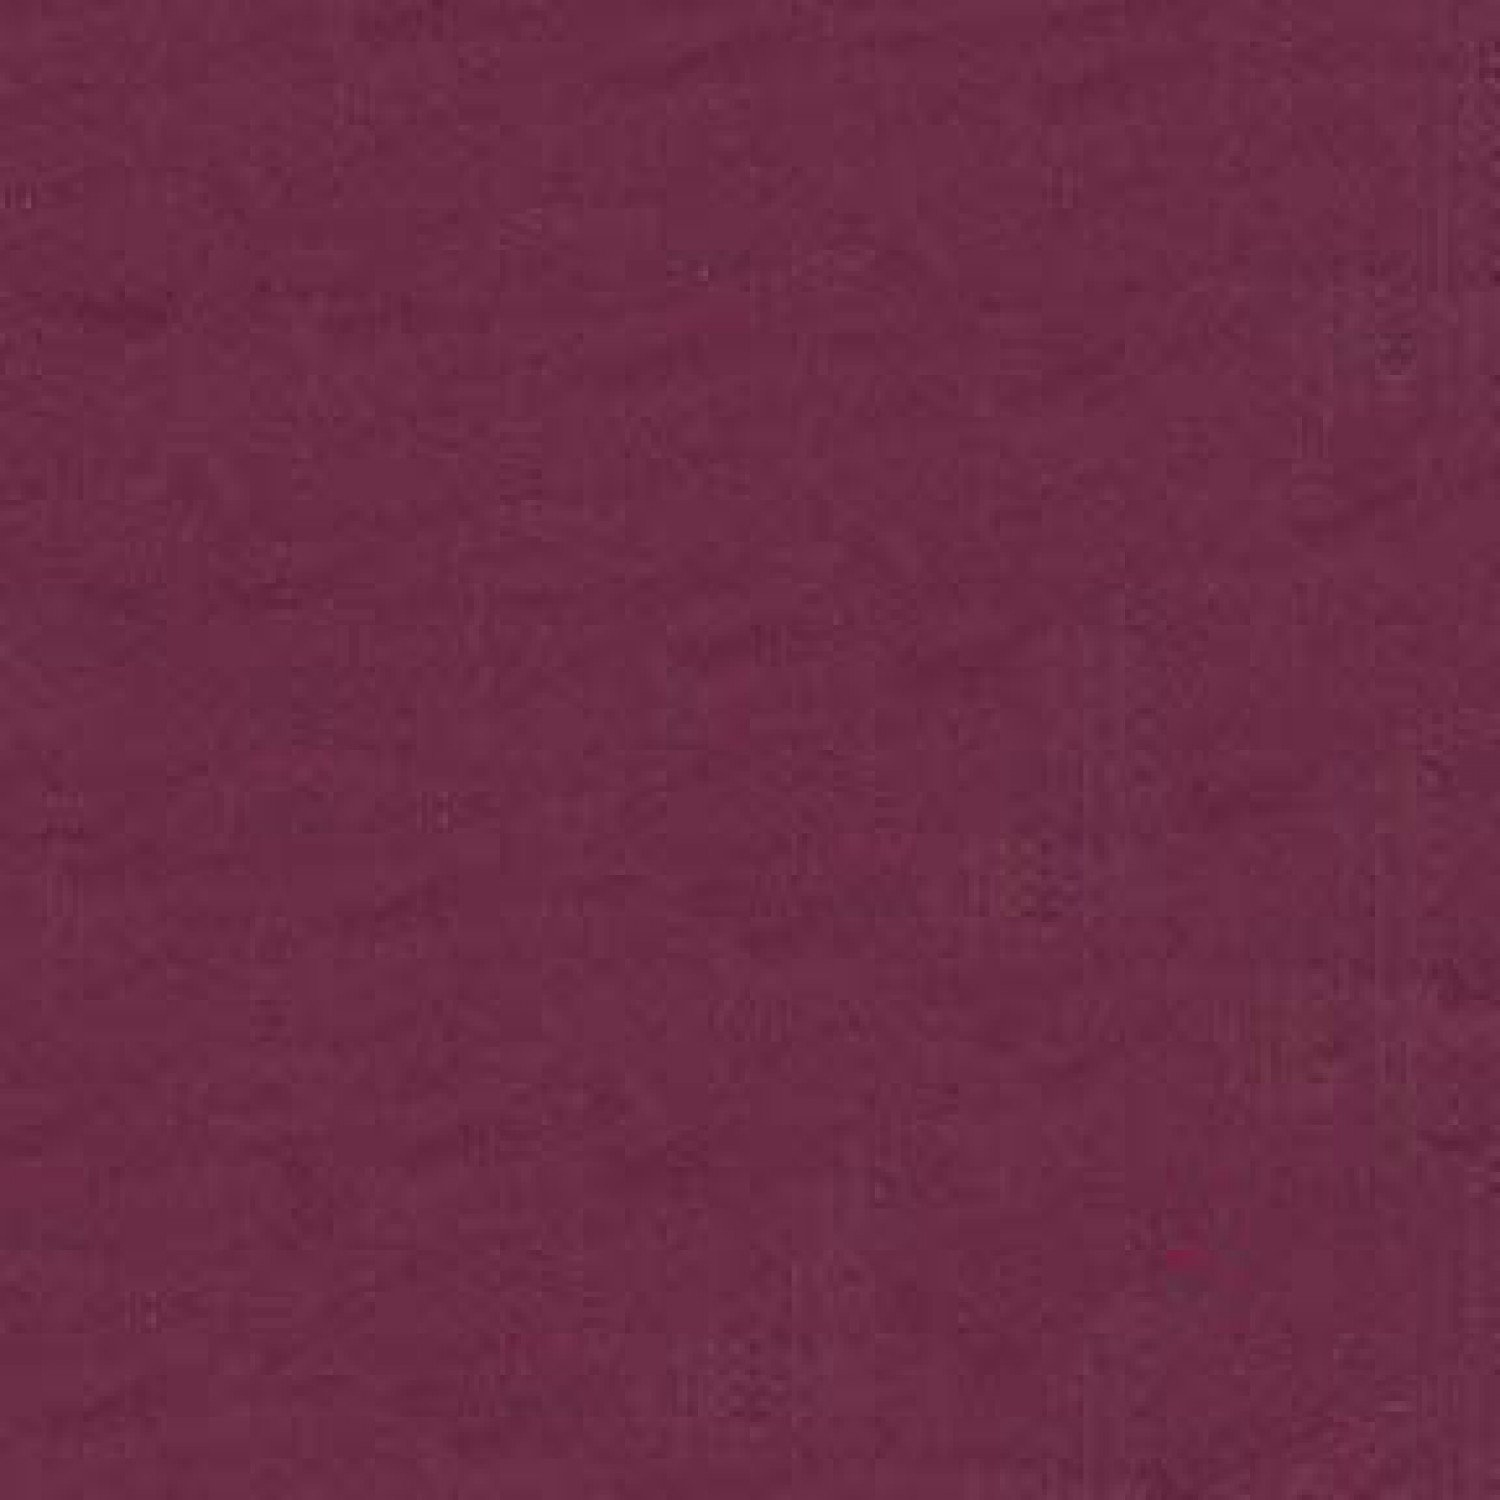 Burgundy 118in Wide Sateen 300 Count *